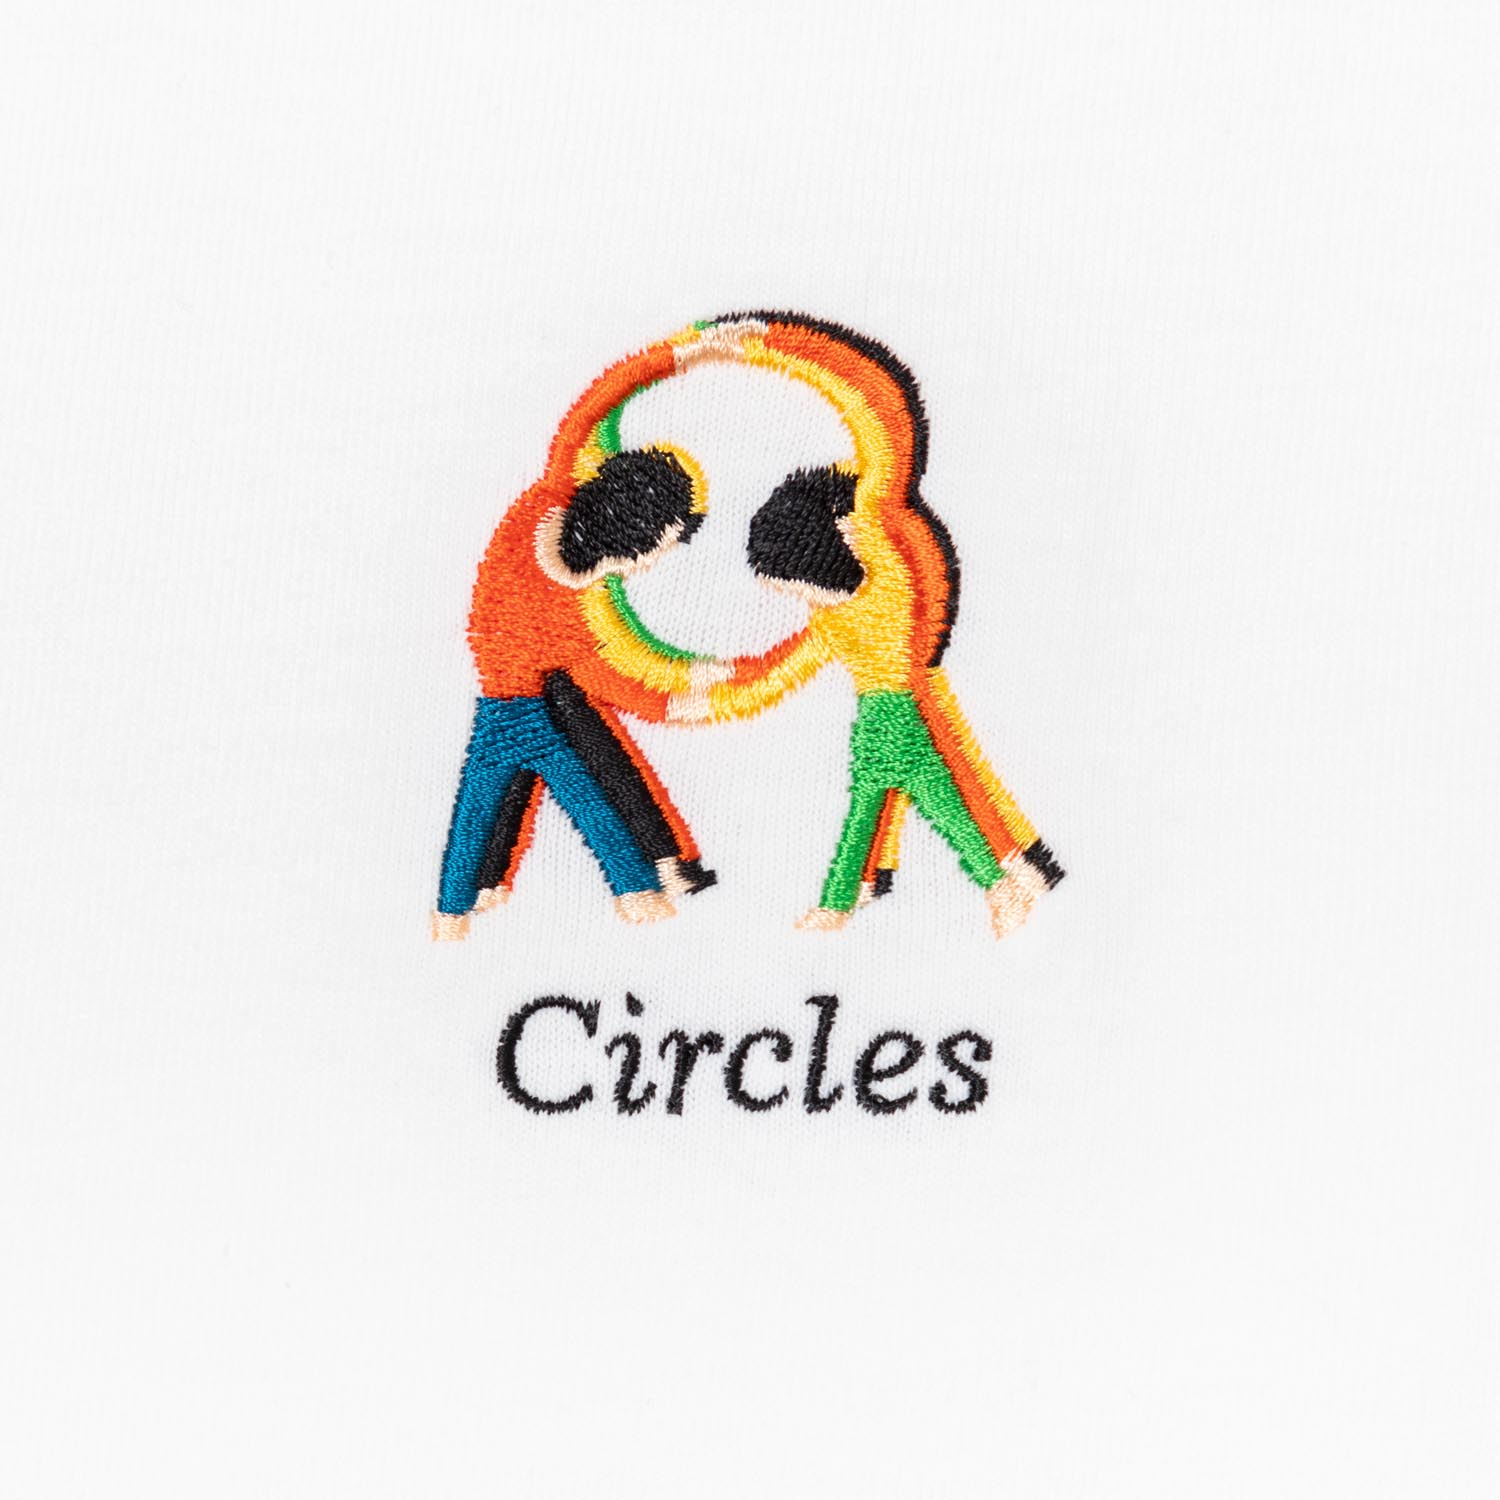 Circles designed by James Ulmer